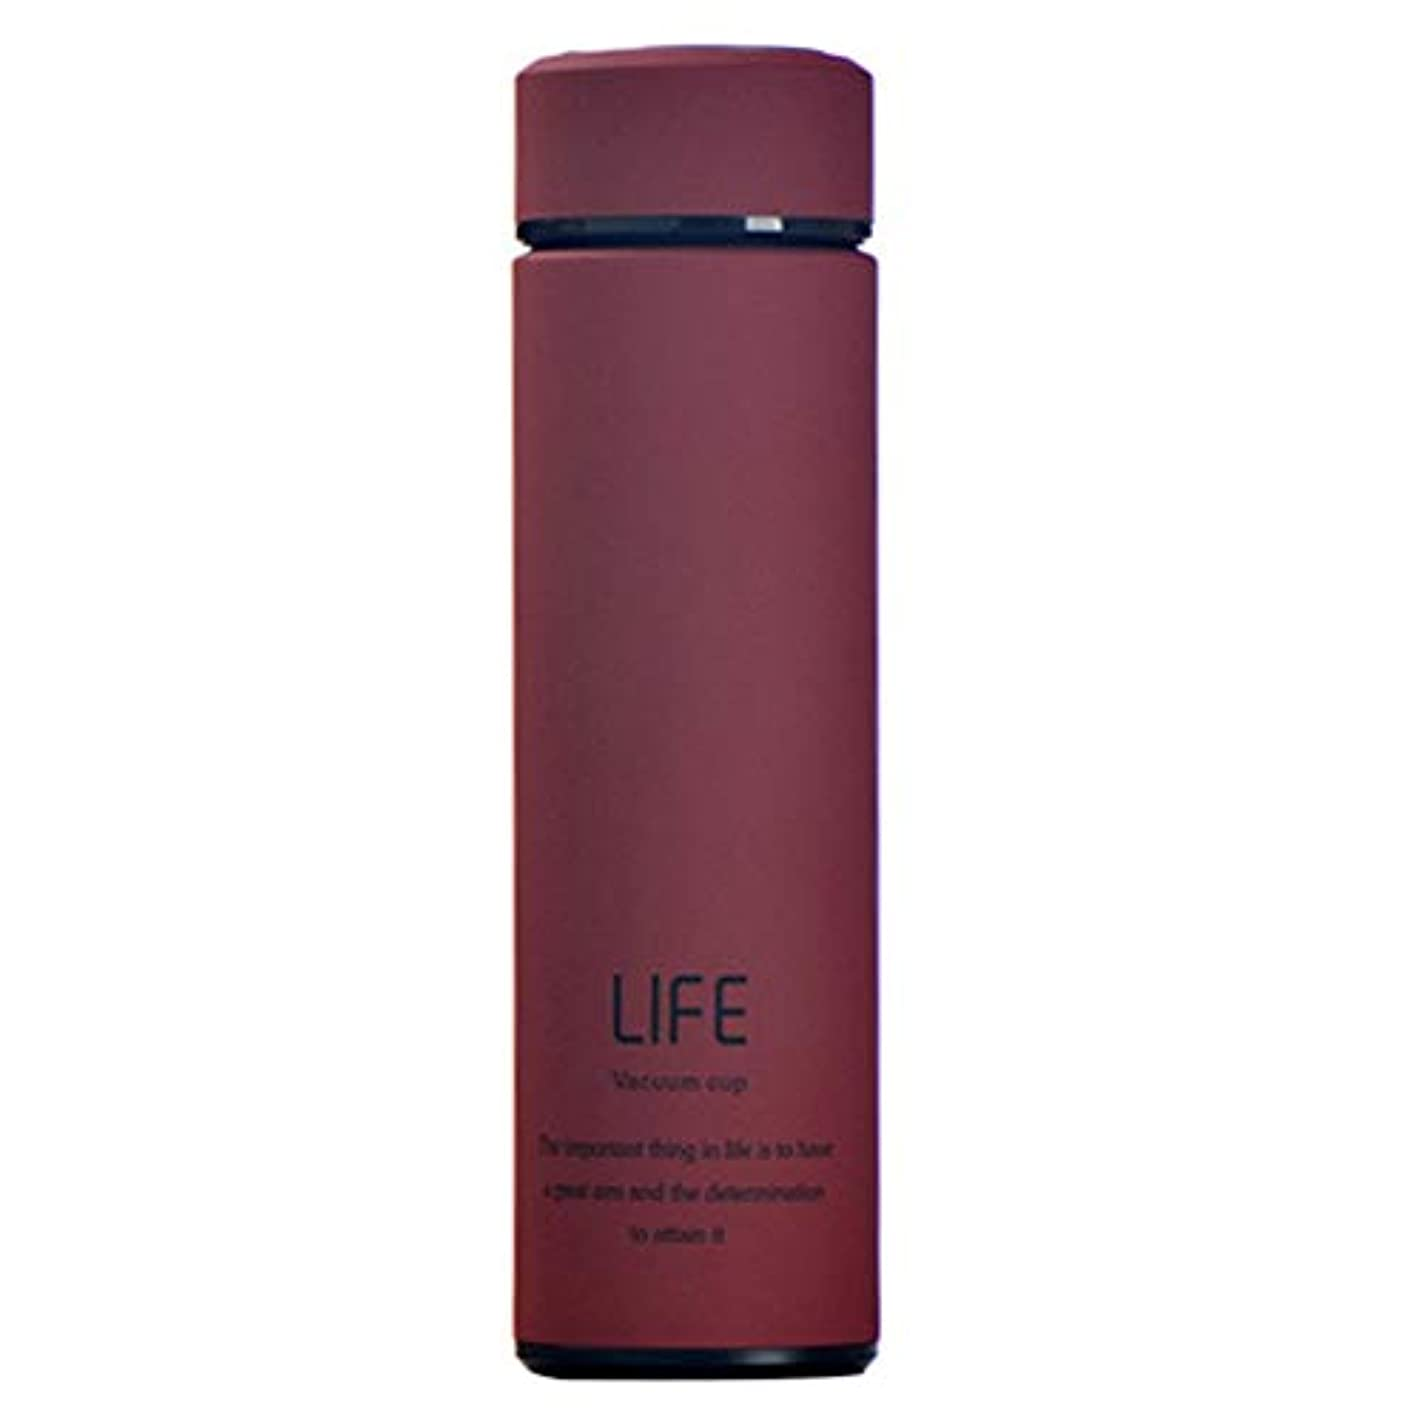 Thermal Water Bottle Kitchen Tools Gadgets,wanshenGyi LIFE 420ml Stainless Steel Office Thermal Water Bottle Travel Vacuum Flask Cup - Red Kitchen Essentials